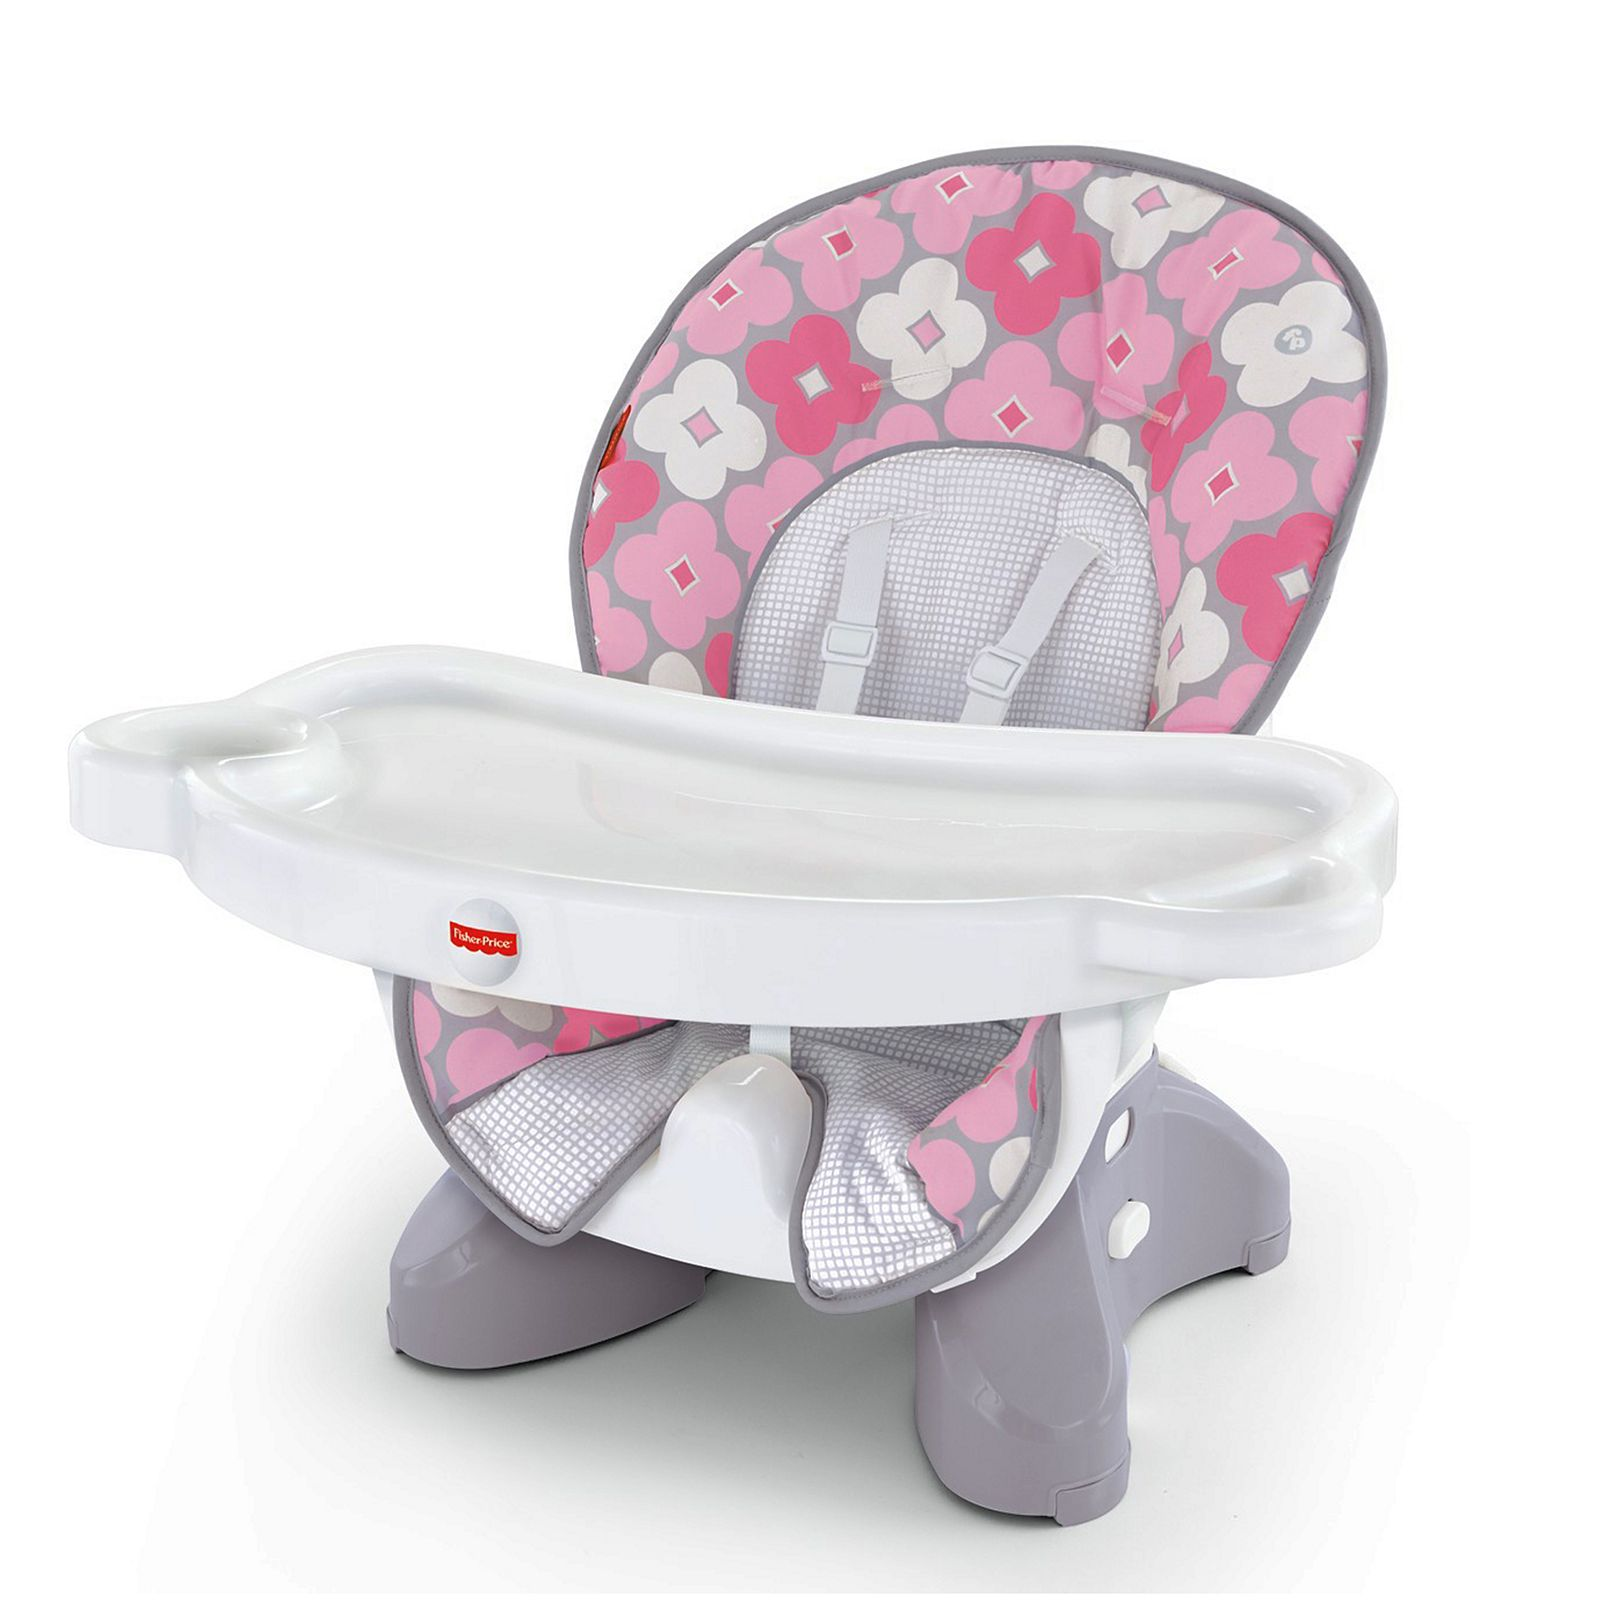 Feeding Fisher Price Baby Infant Space Saver High Chair Booster Seat Pink Ellipse 50 Lb